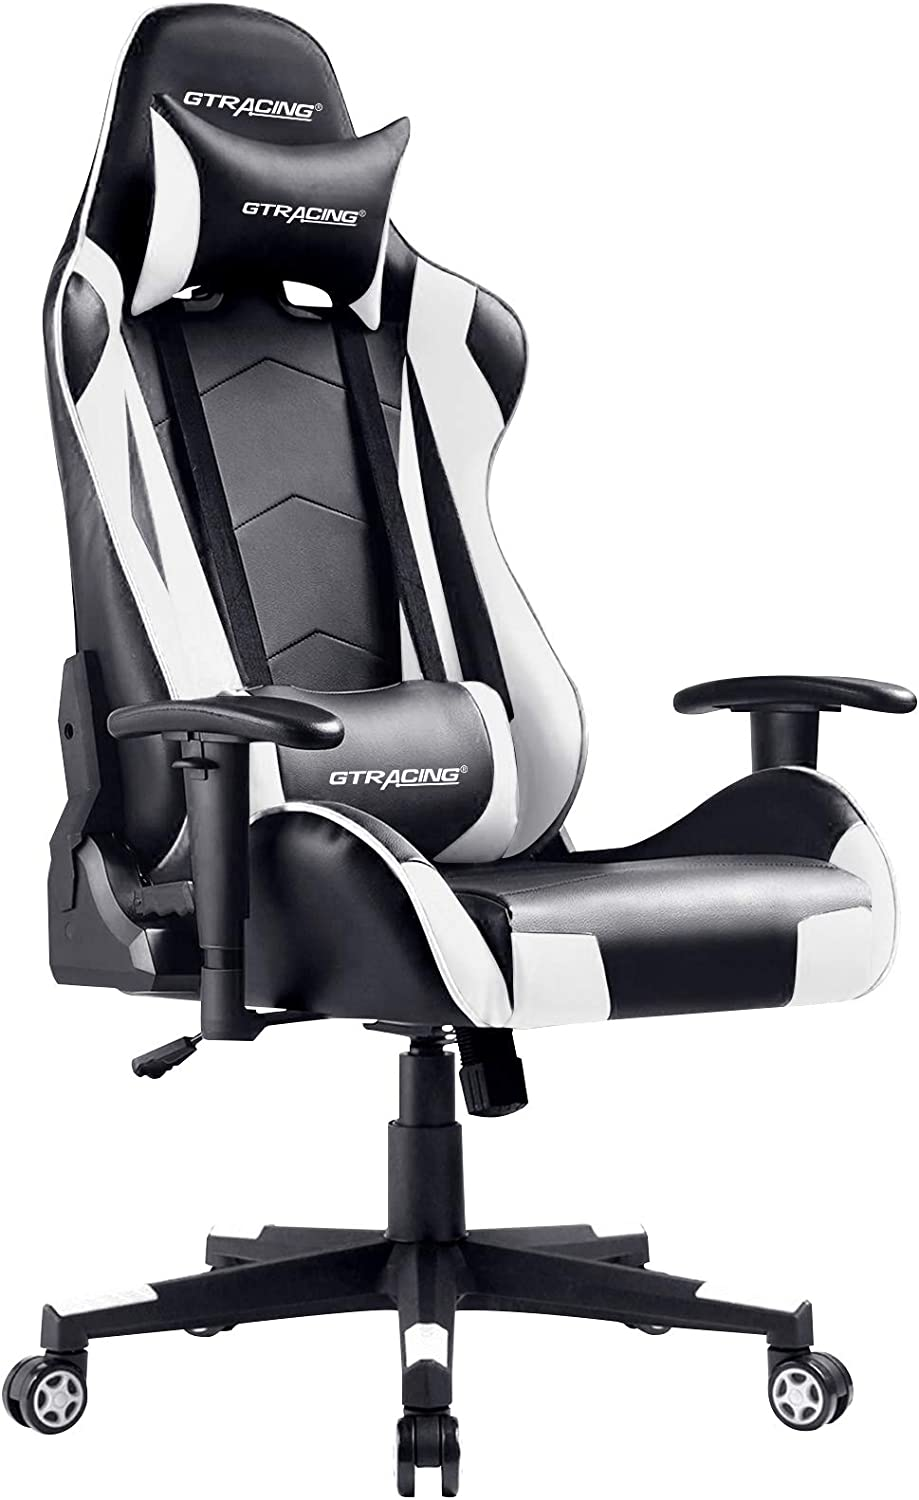 GTRACING White Gaming Chair Review